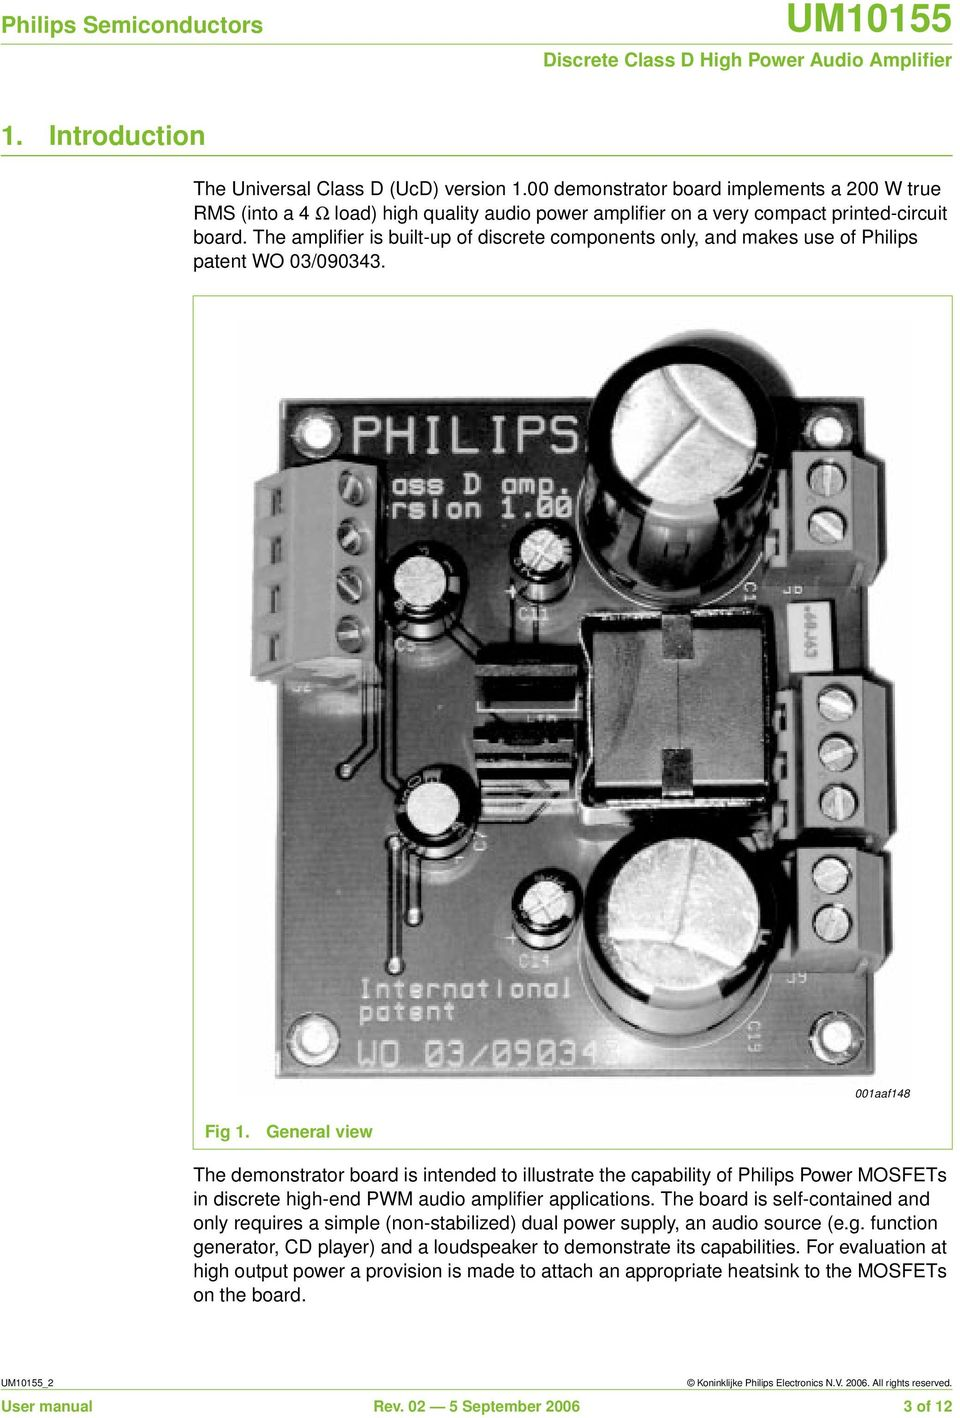 Um Discrete Class D High Power Audio Amplifier Document Information Semiconductor Circuits Electronics Textbook General View The Demonstrator Board Is Intended To Illustrate Capability Of Philips Mosfets In